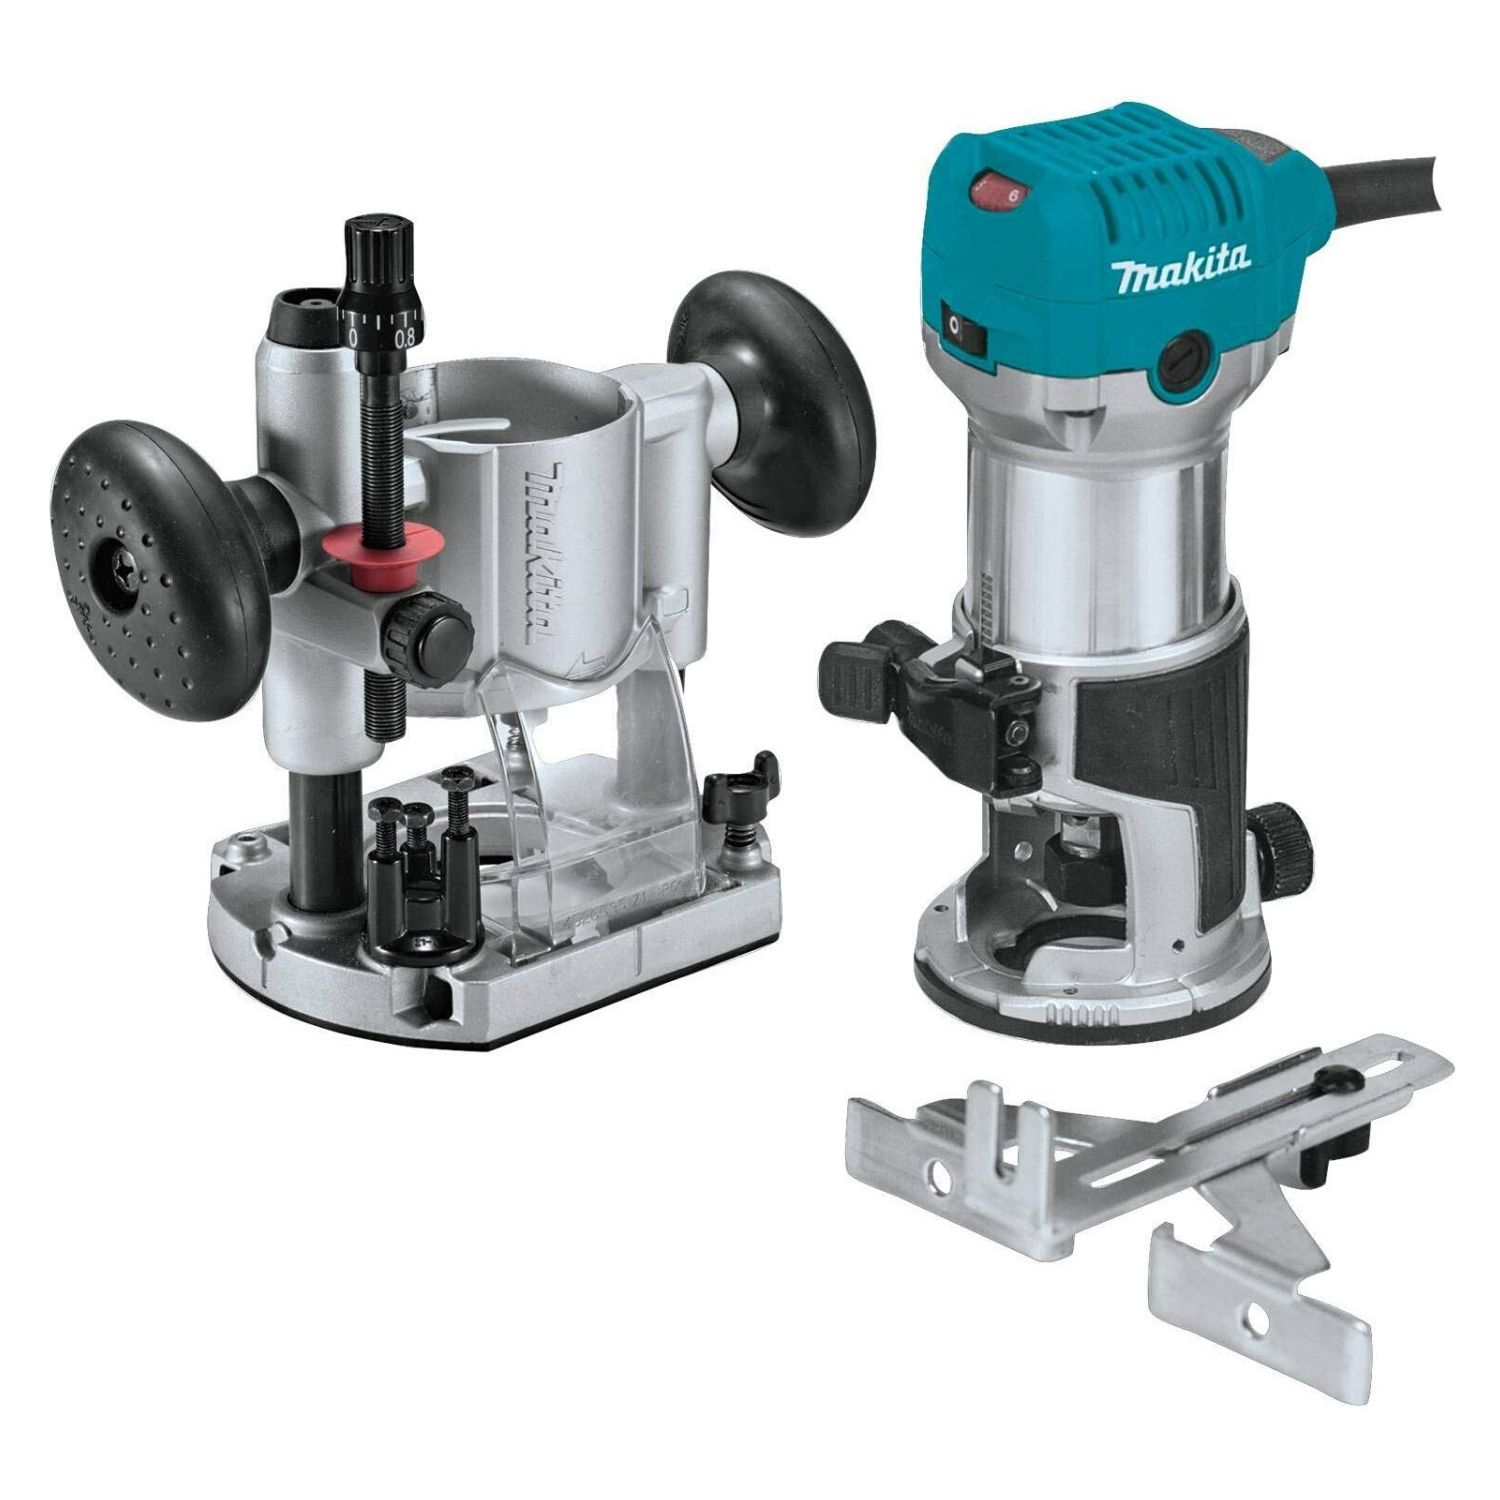 Makita RT0701CX7 1-1_4 HP Compact Router Kit